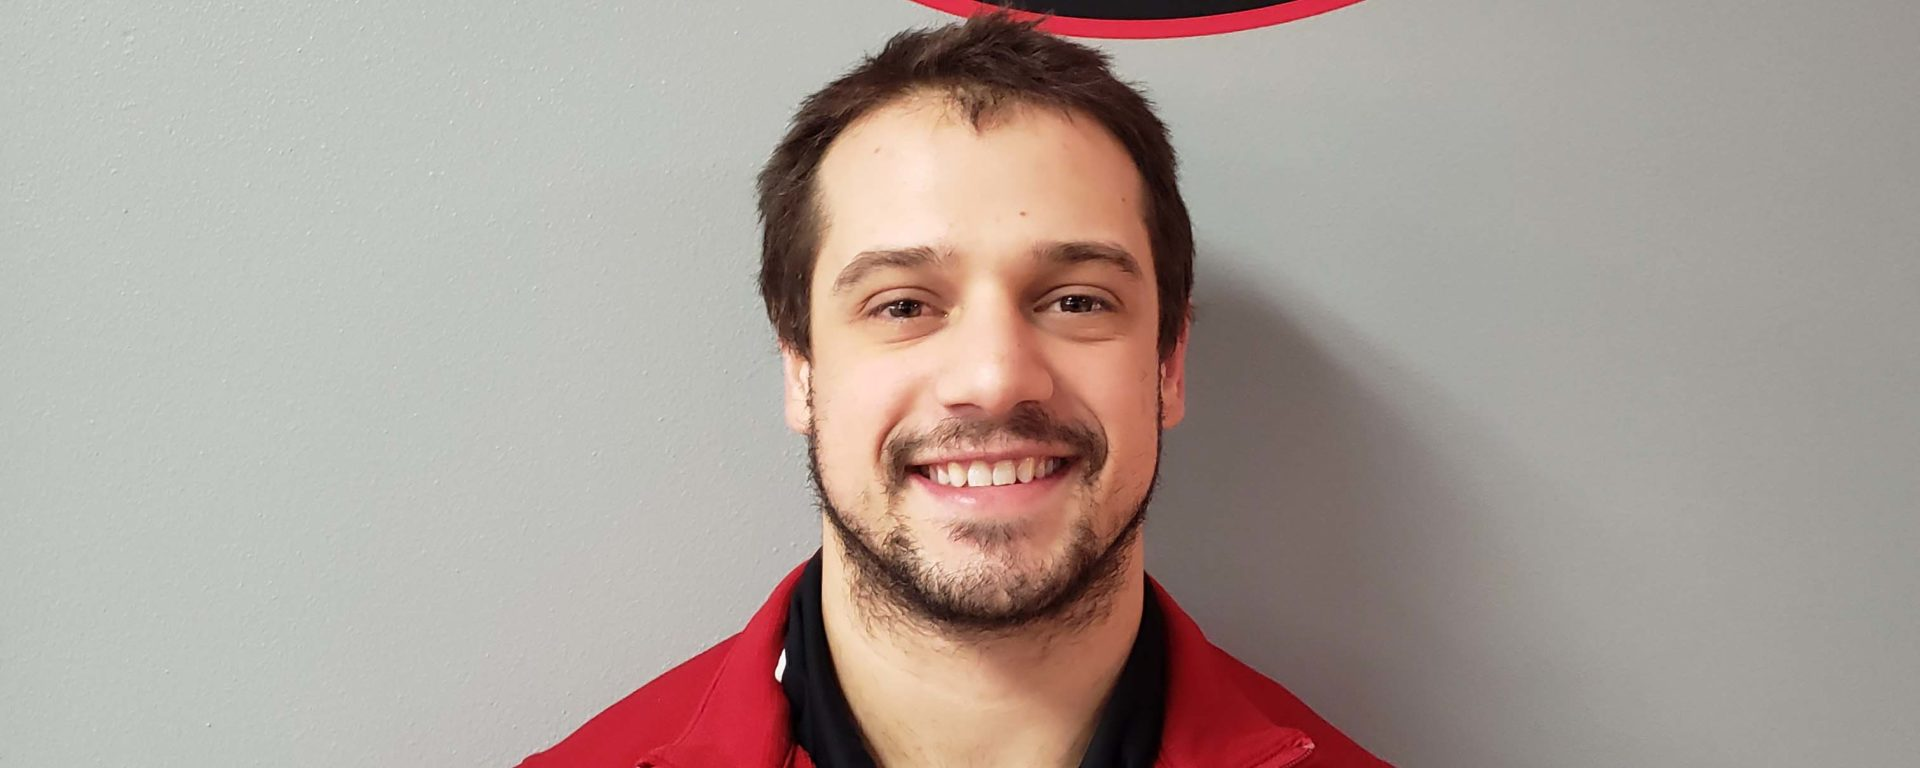 "In this edition of ""Catching Up,"" we spoke with Dr. Gerald Dolce, a 2017 graduate from the School of Physical Therapy and Director of ATI Physical Therapy."